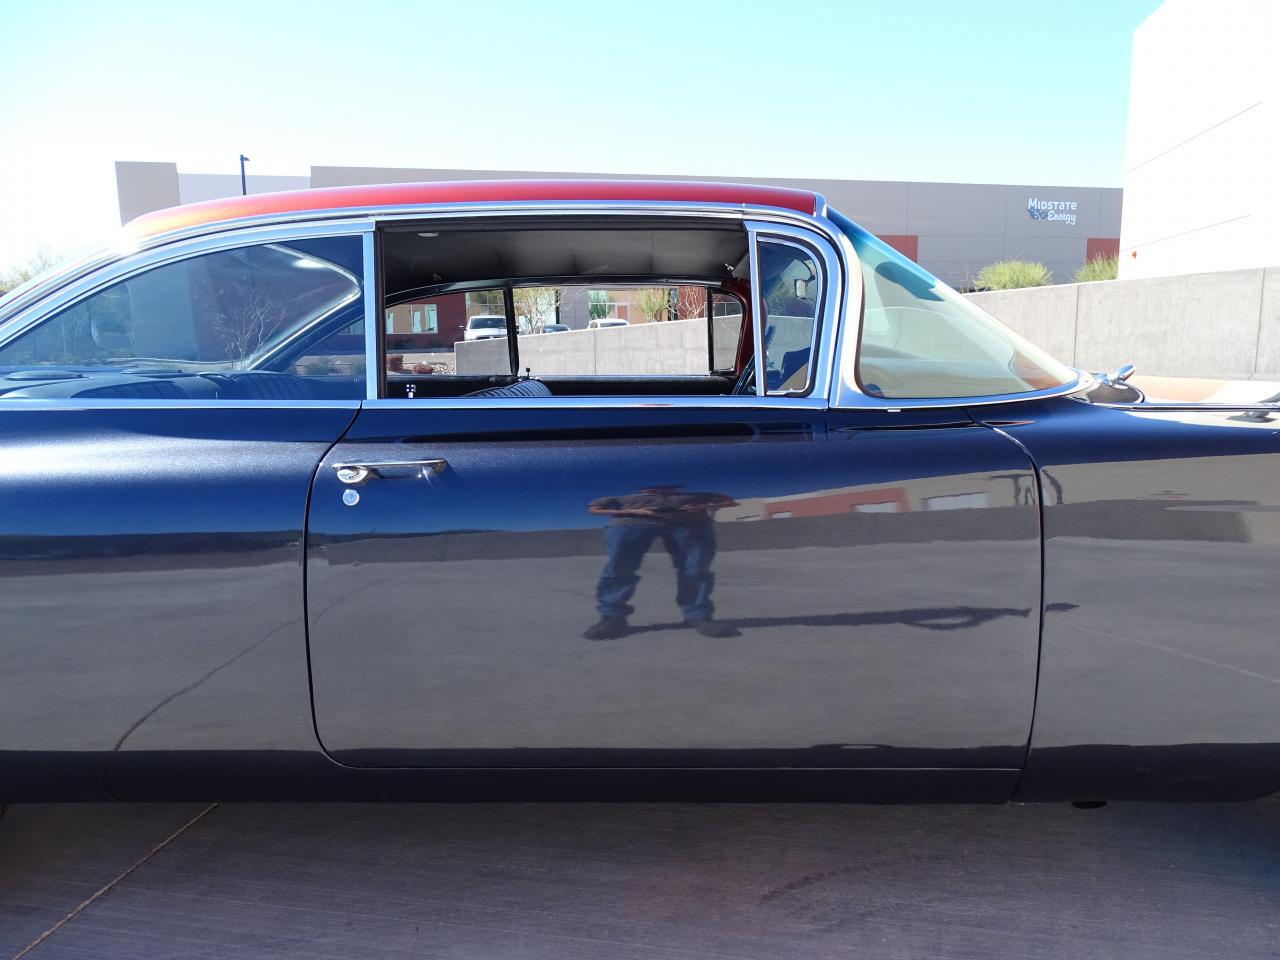 Large Picture of '60 Series 62 located in Deer Valley Arizona - $51,000.00 Offered by Gateway Classic Cars - Scottsdale - MZFH